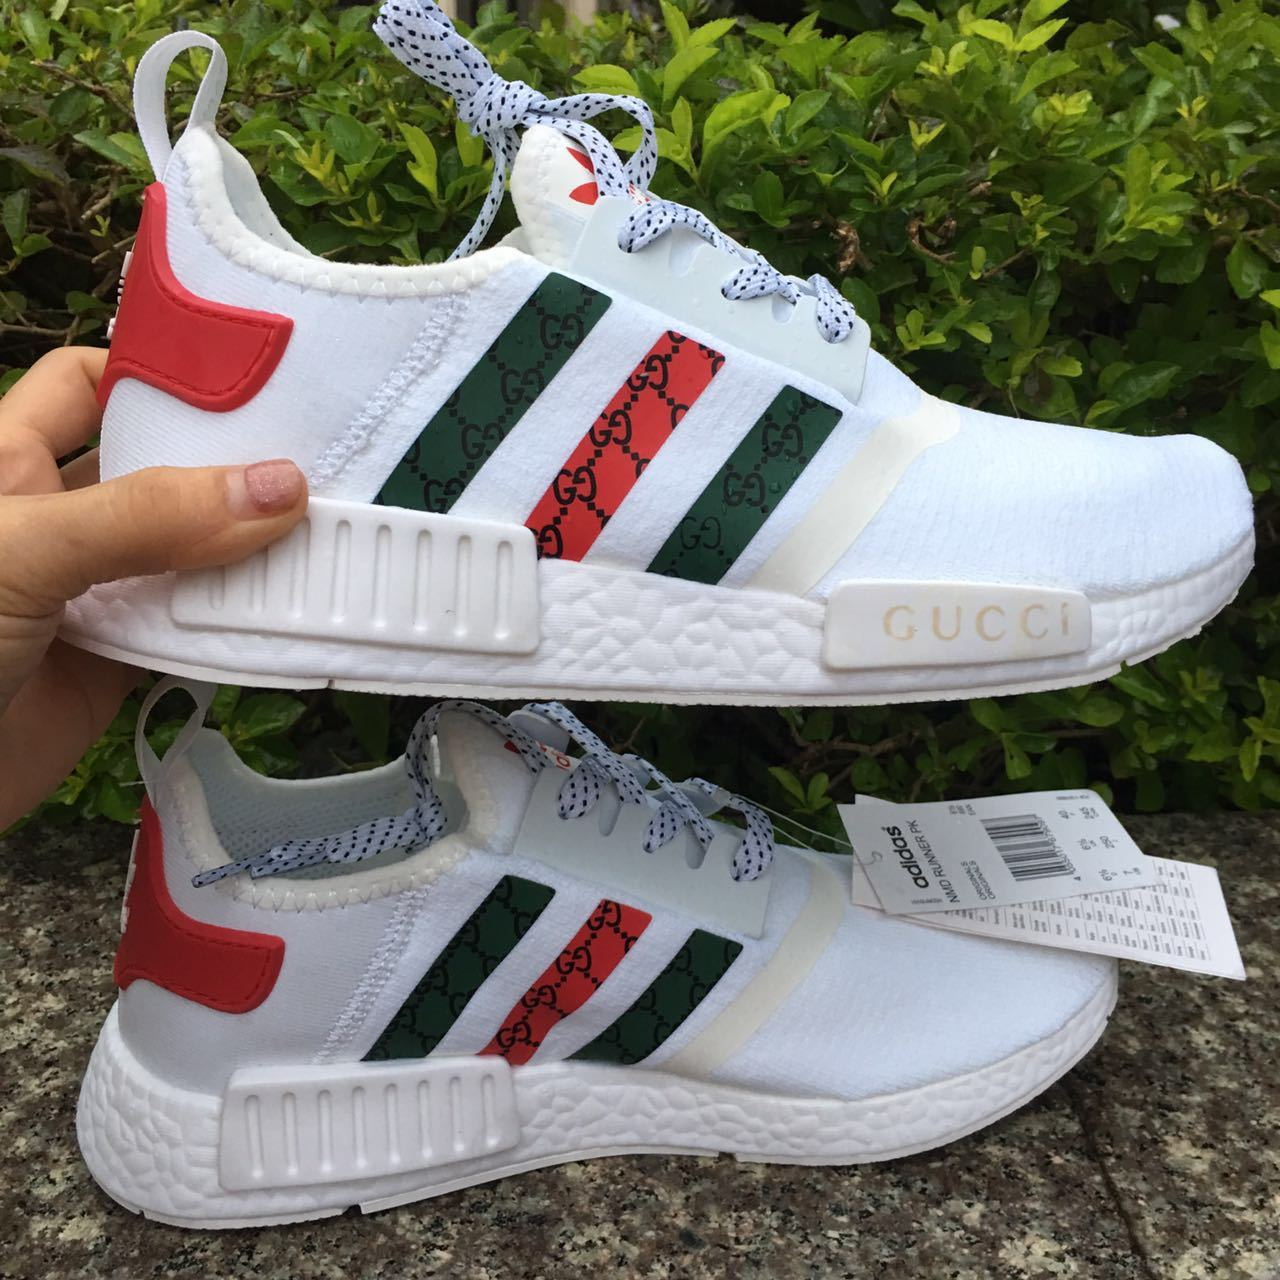 0aaebae23 womens adidas nmd gucci sneakers white color and 50 similar items. Ez5oj